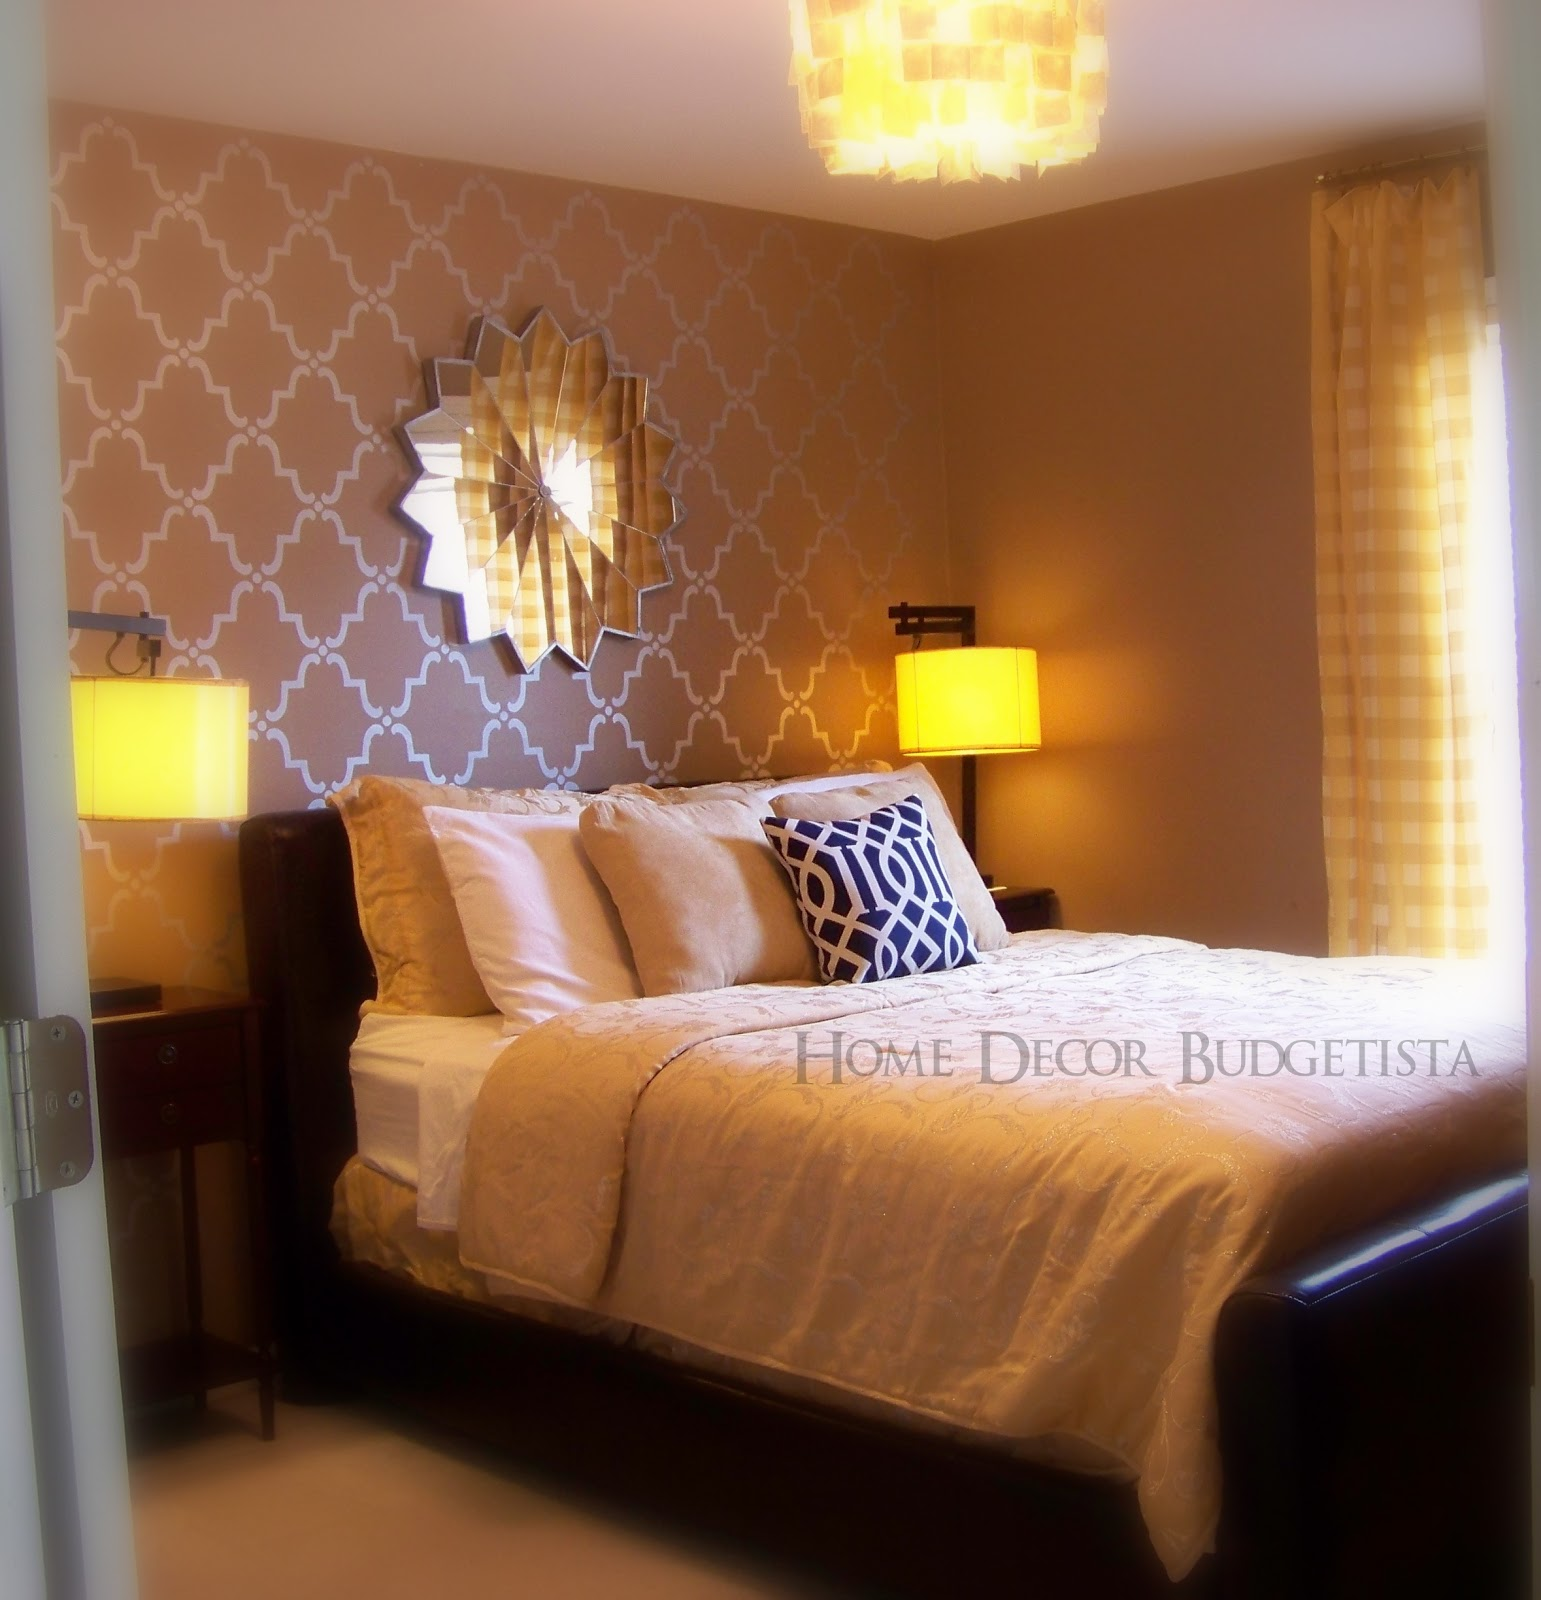 Accent Wall For Bedroom Bedroom Colour Ideas Asian Paints Encore 2 Bedroom Apartment Suite Small Master Bedroom Design Ideas Pictures: Home Decor Budgetista: Home Tour